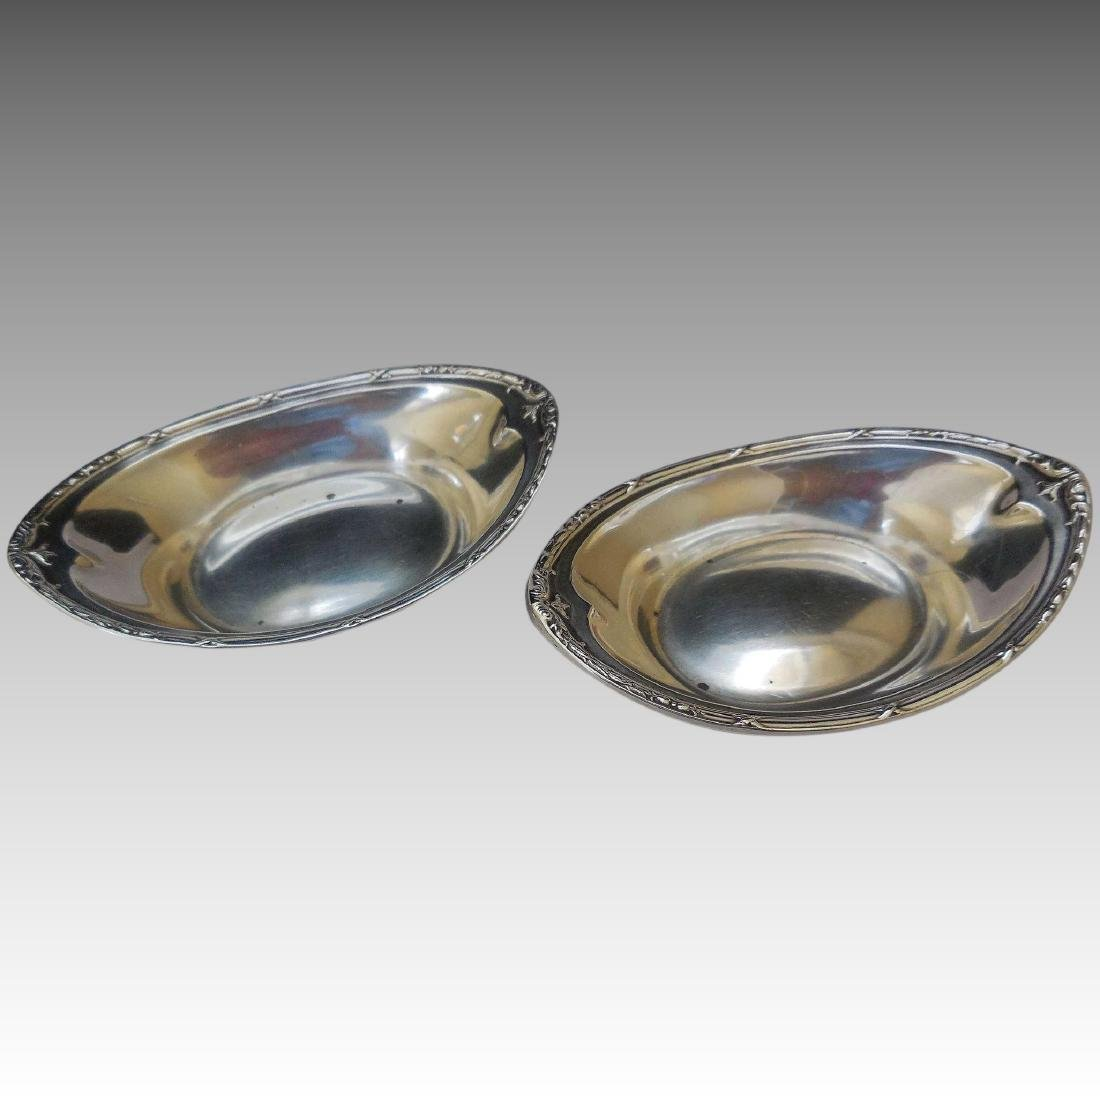 Pair of Dominick & Haff Sterling Silver Nut Dishes